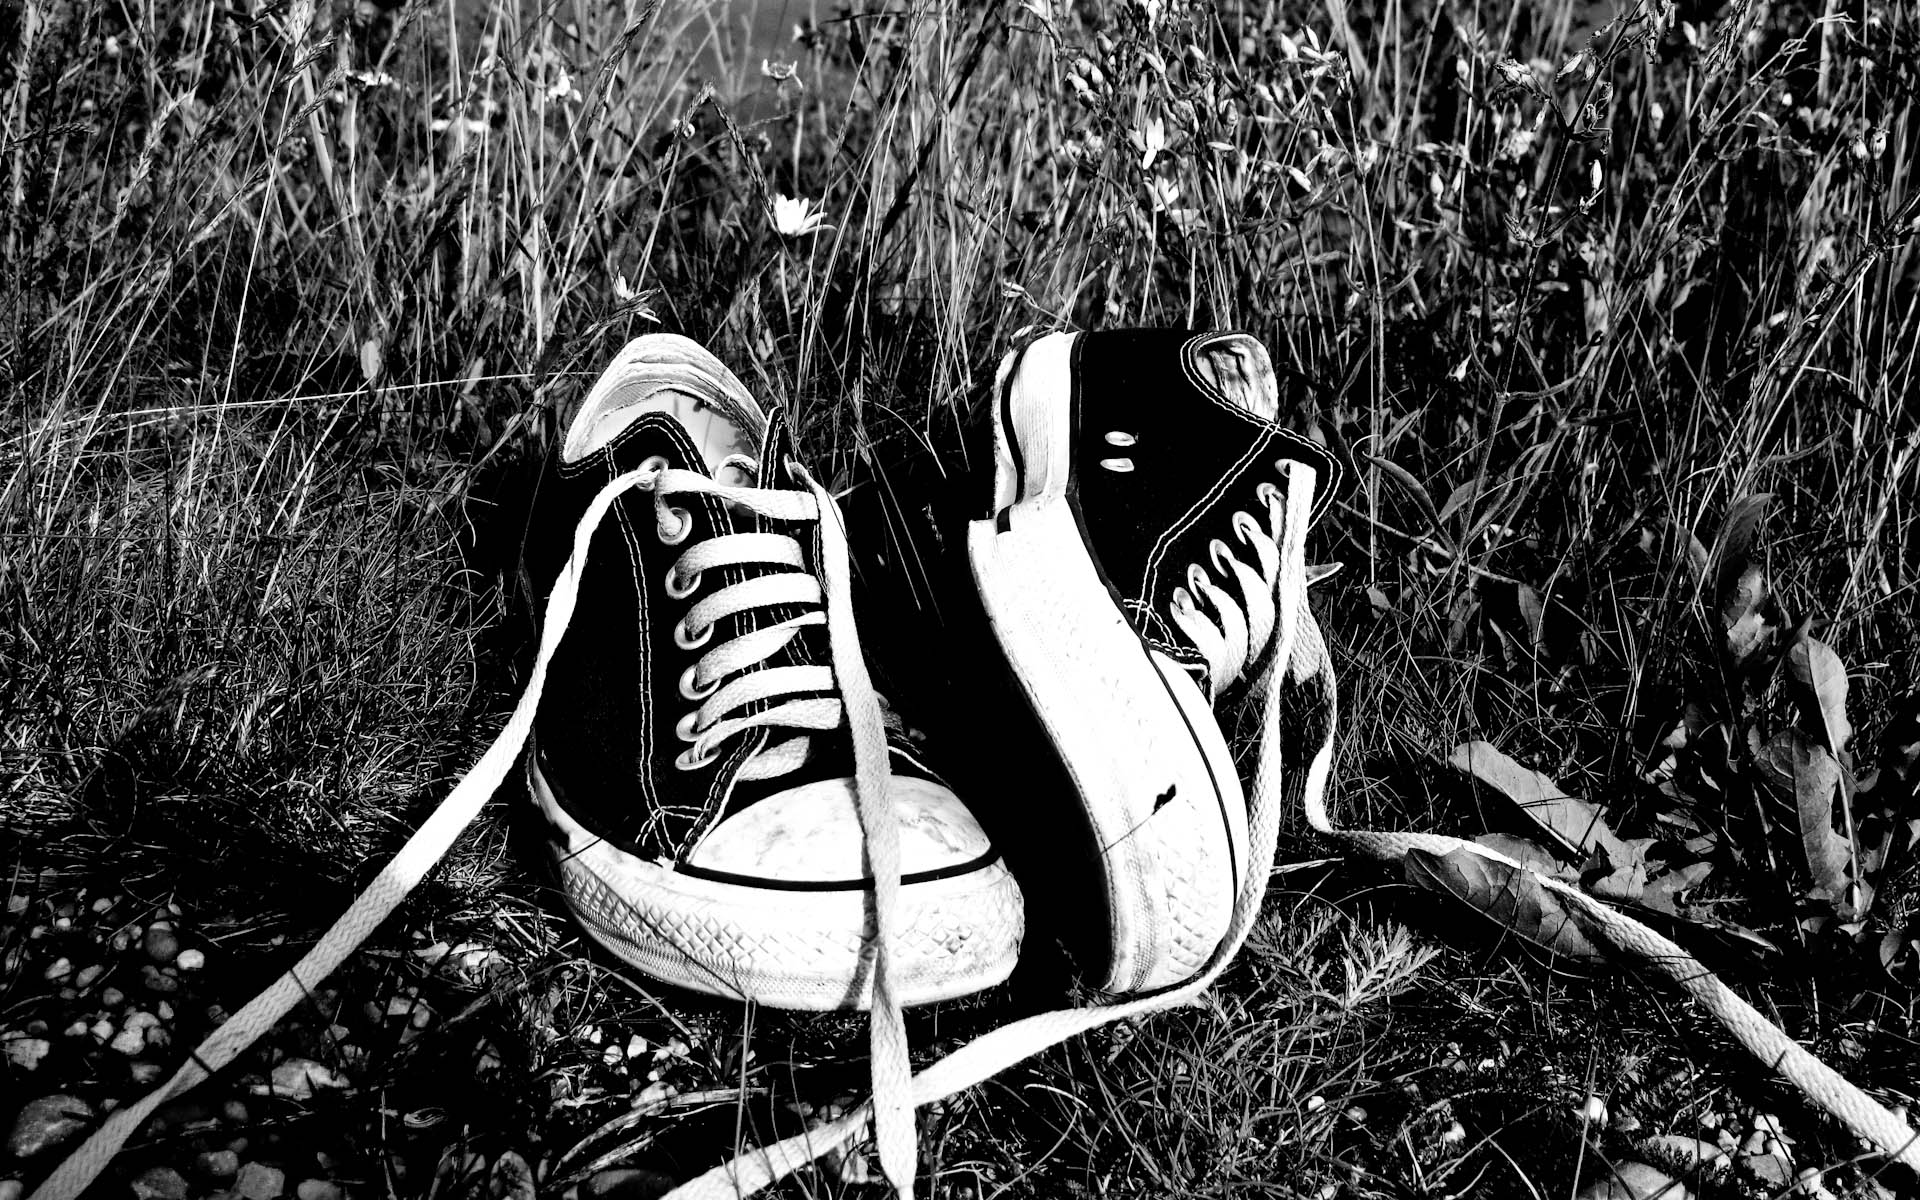 green grass shoes grayscale converse monochrome sneakers wallpaper 1920x1200 54871 wallpaperup. Black Bedroom Furniture Sets. Home Design Ideas